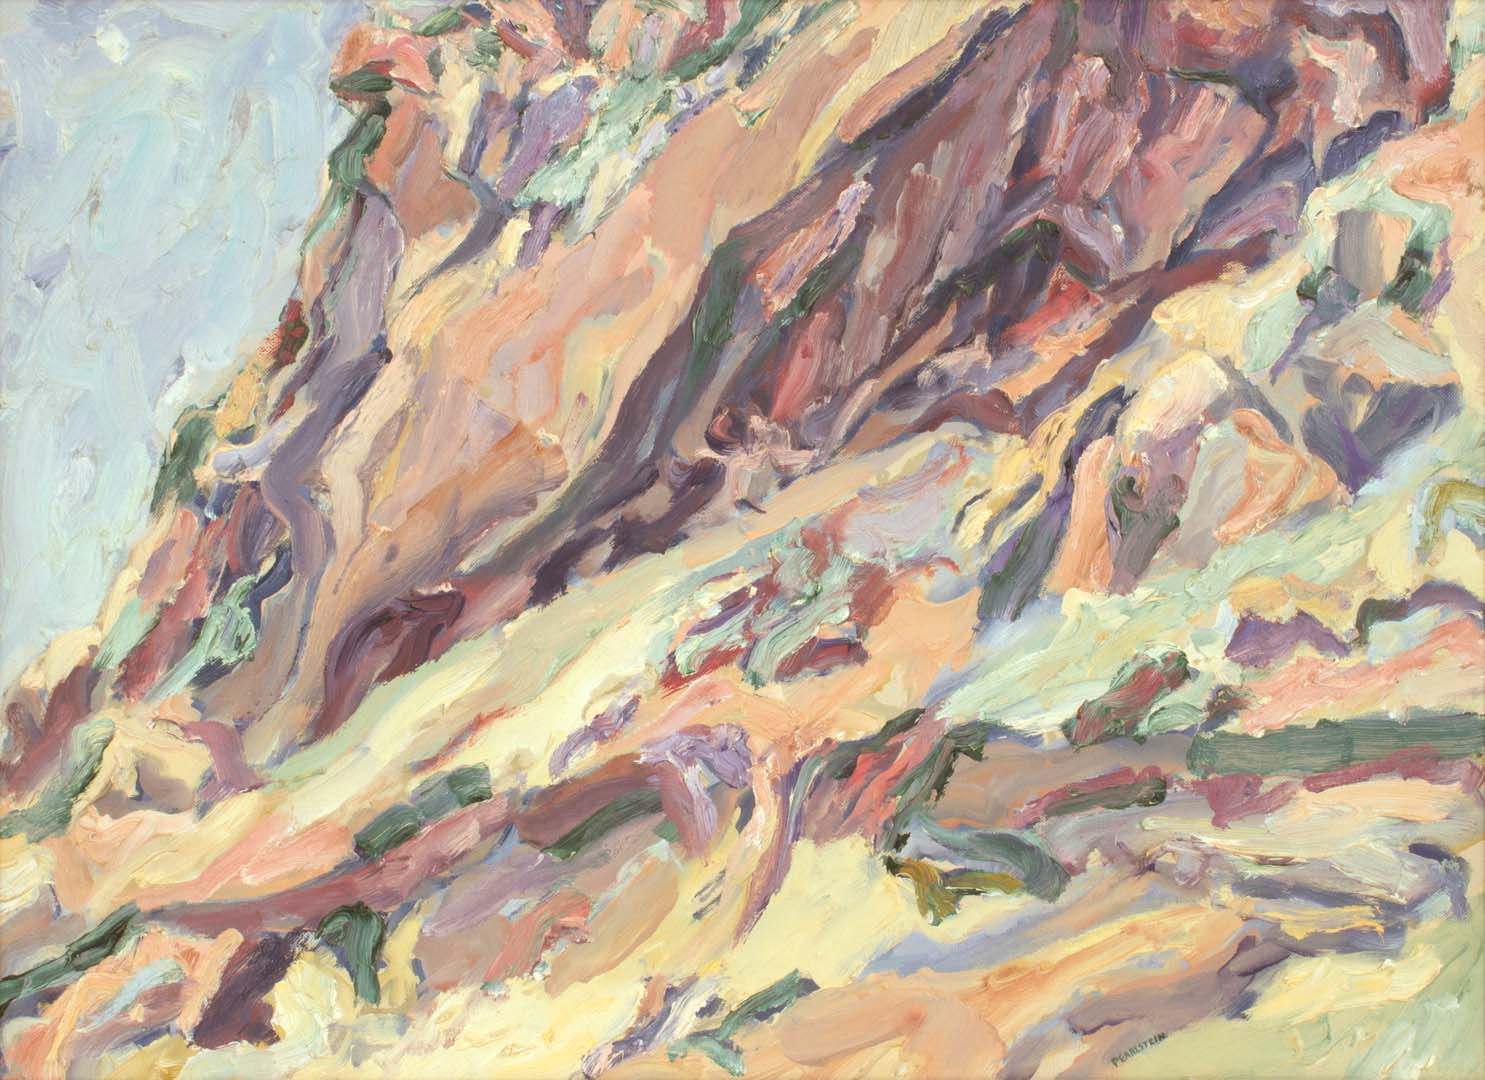 1959 Roman Landscape (Positano Cliff) Oil on Canvas 15.5 x 21.5